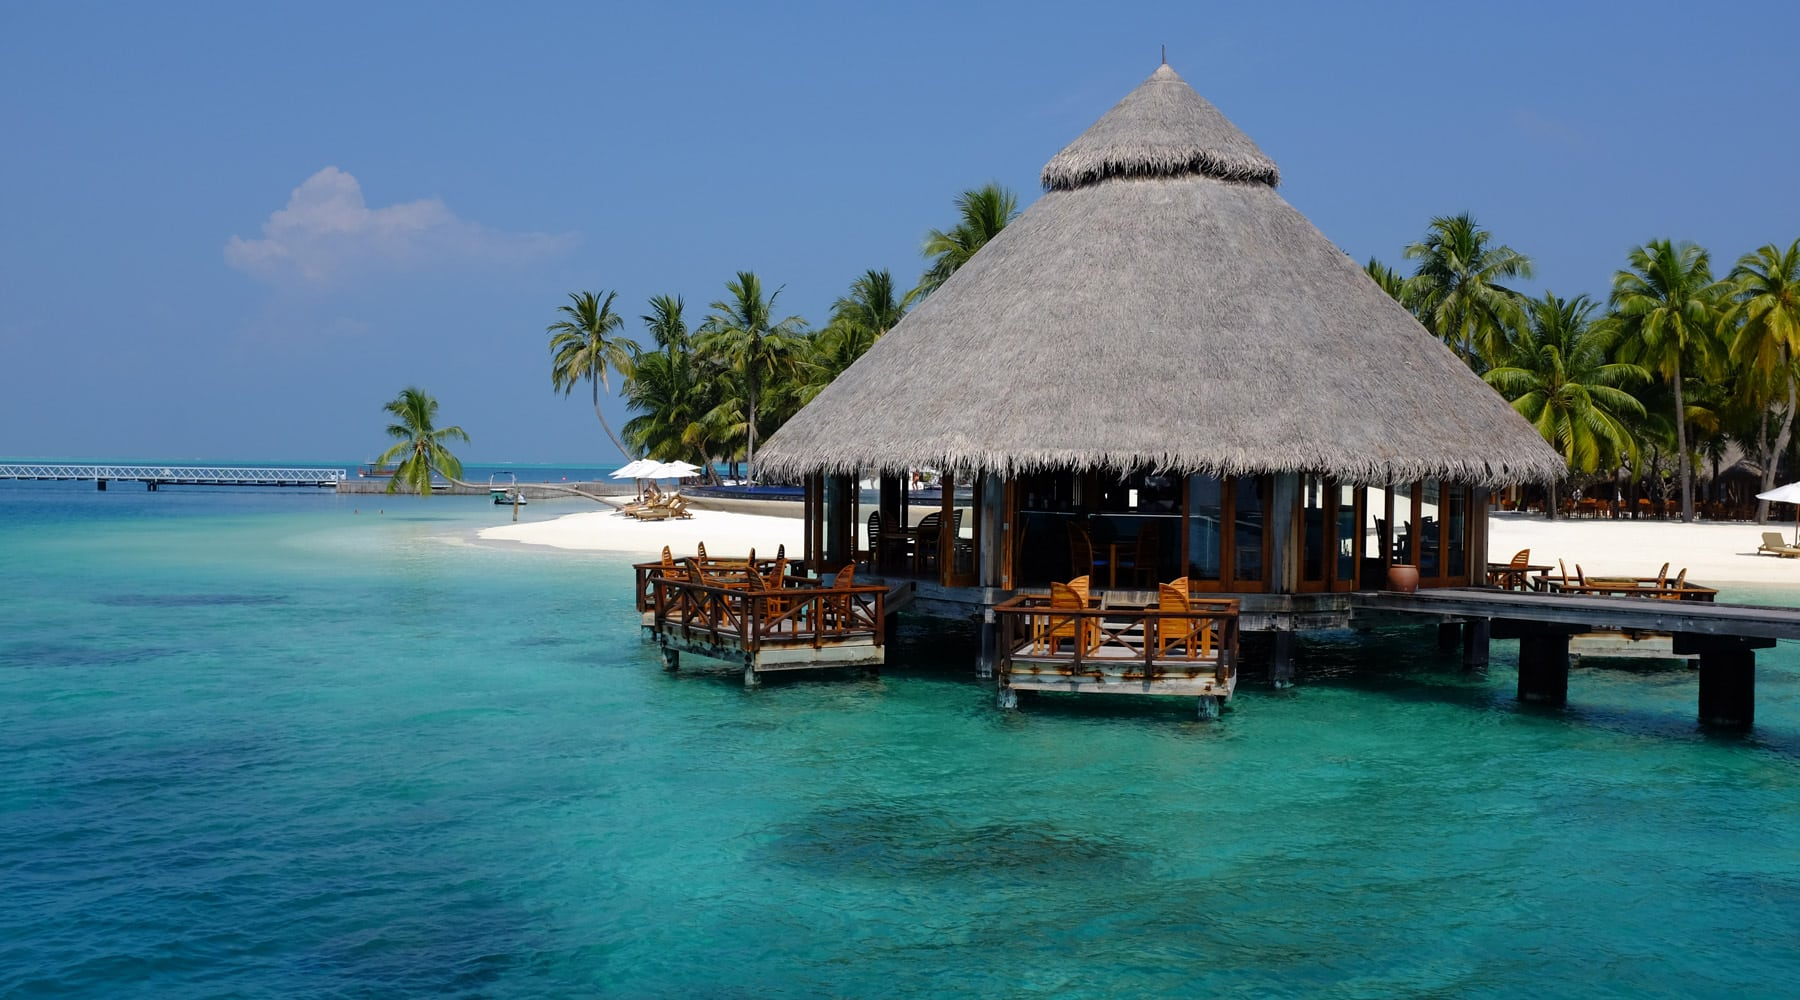 Rangali Island – A Remarkable Resort in the Maldives